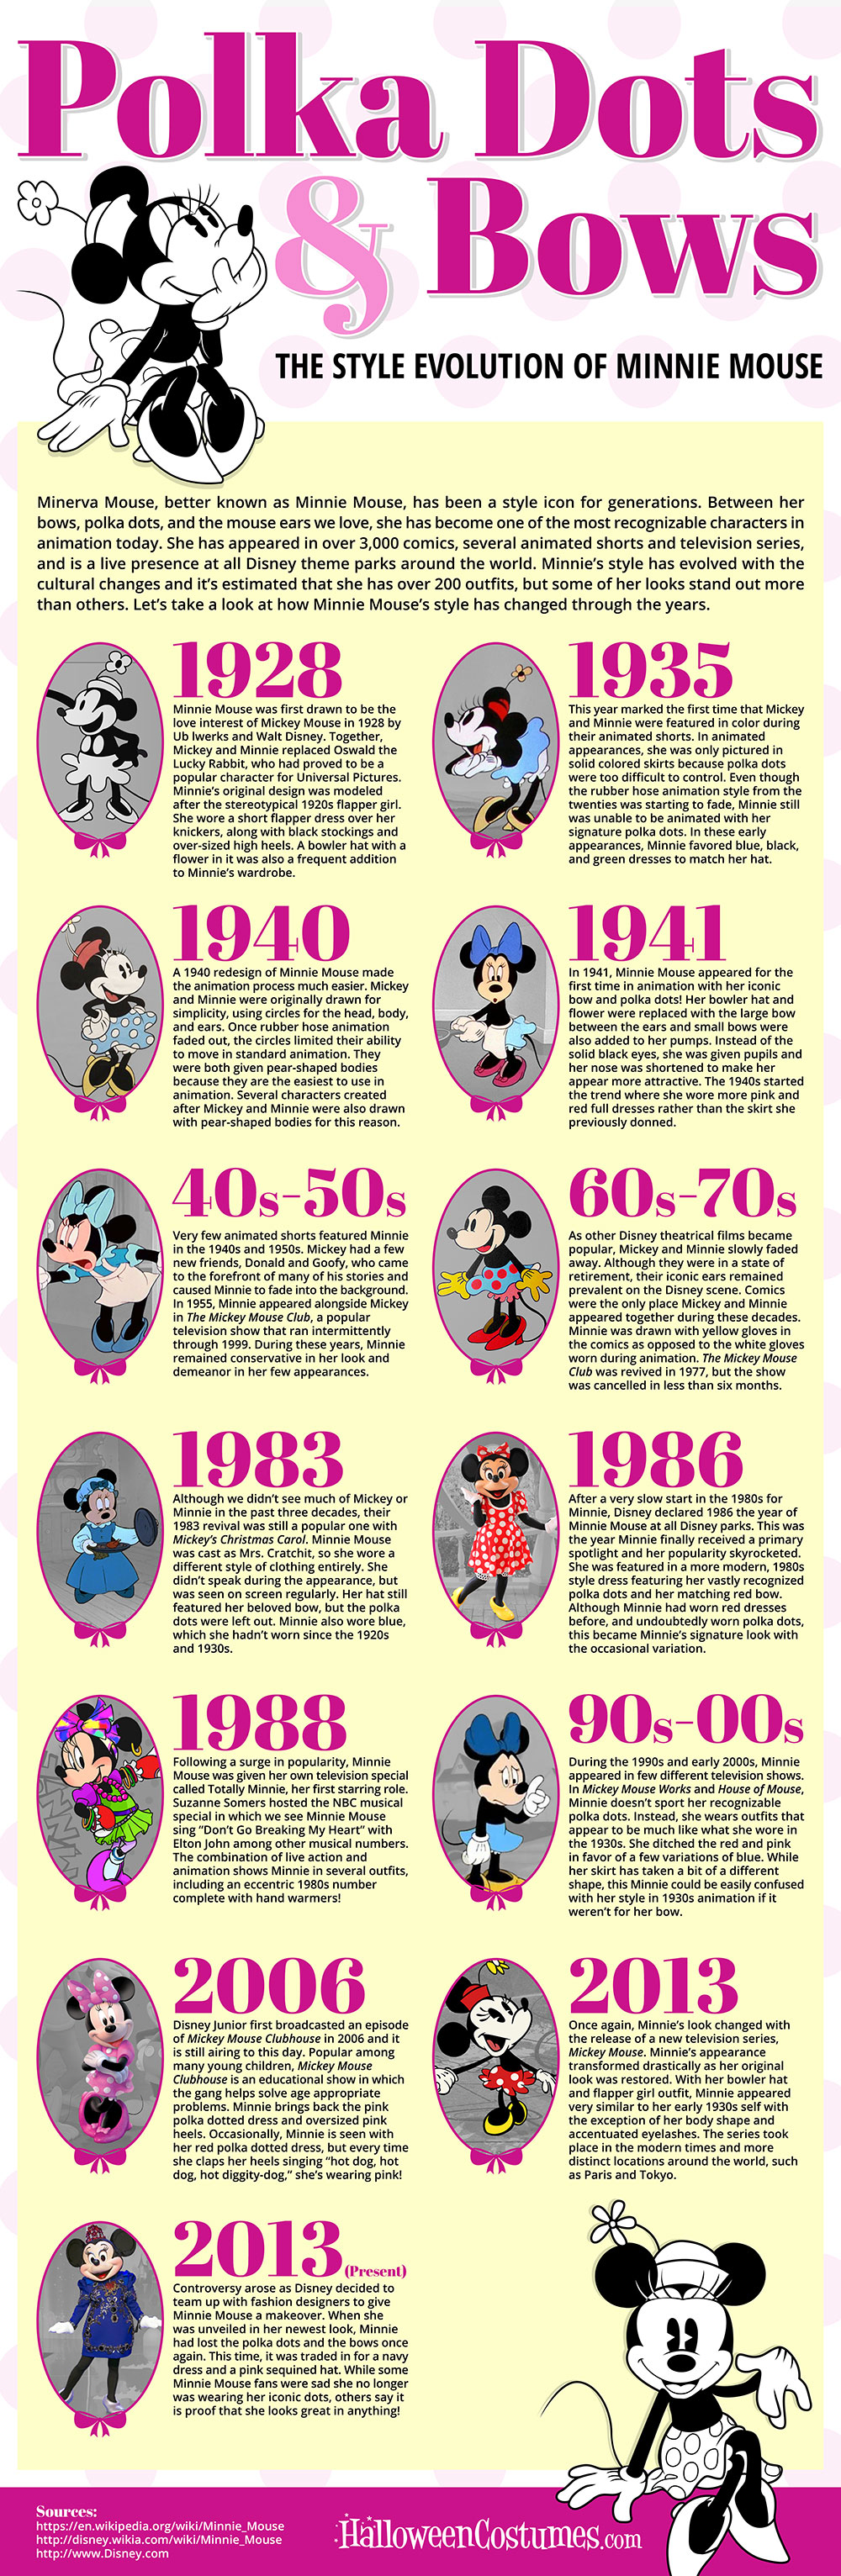 Evolution of Minnie Mouse